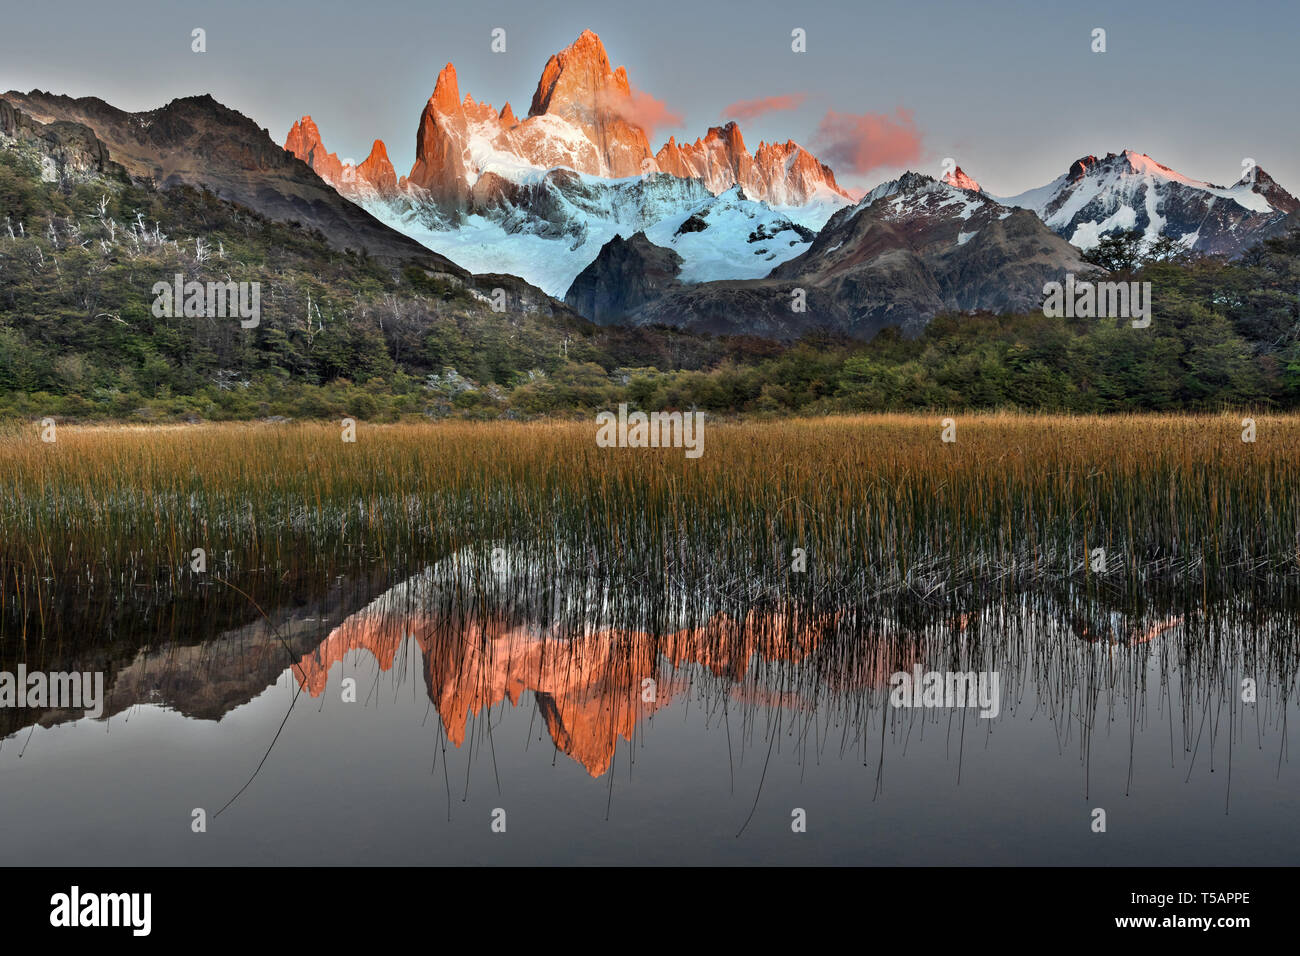 the massif of the Fitz Roy reflected in the laguna Capri, Los Glaciares NP, Argentina - Stock Image